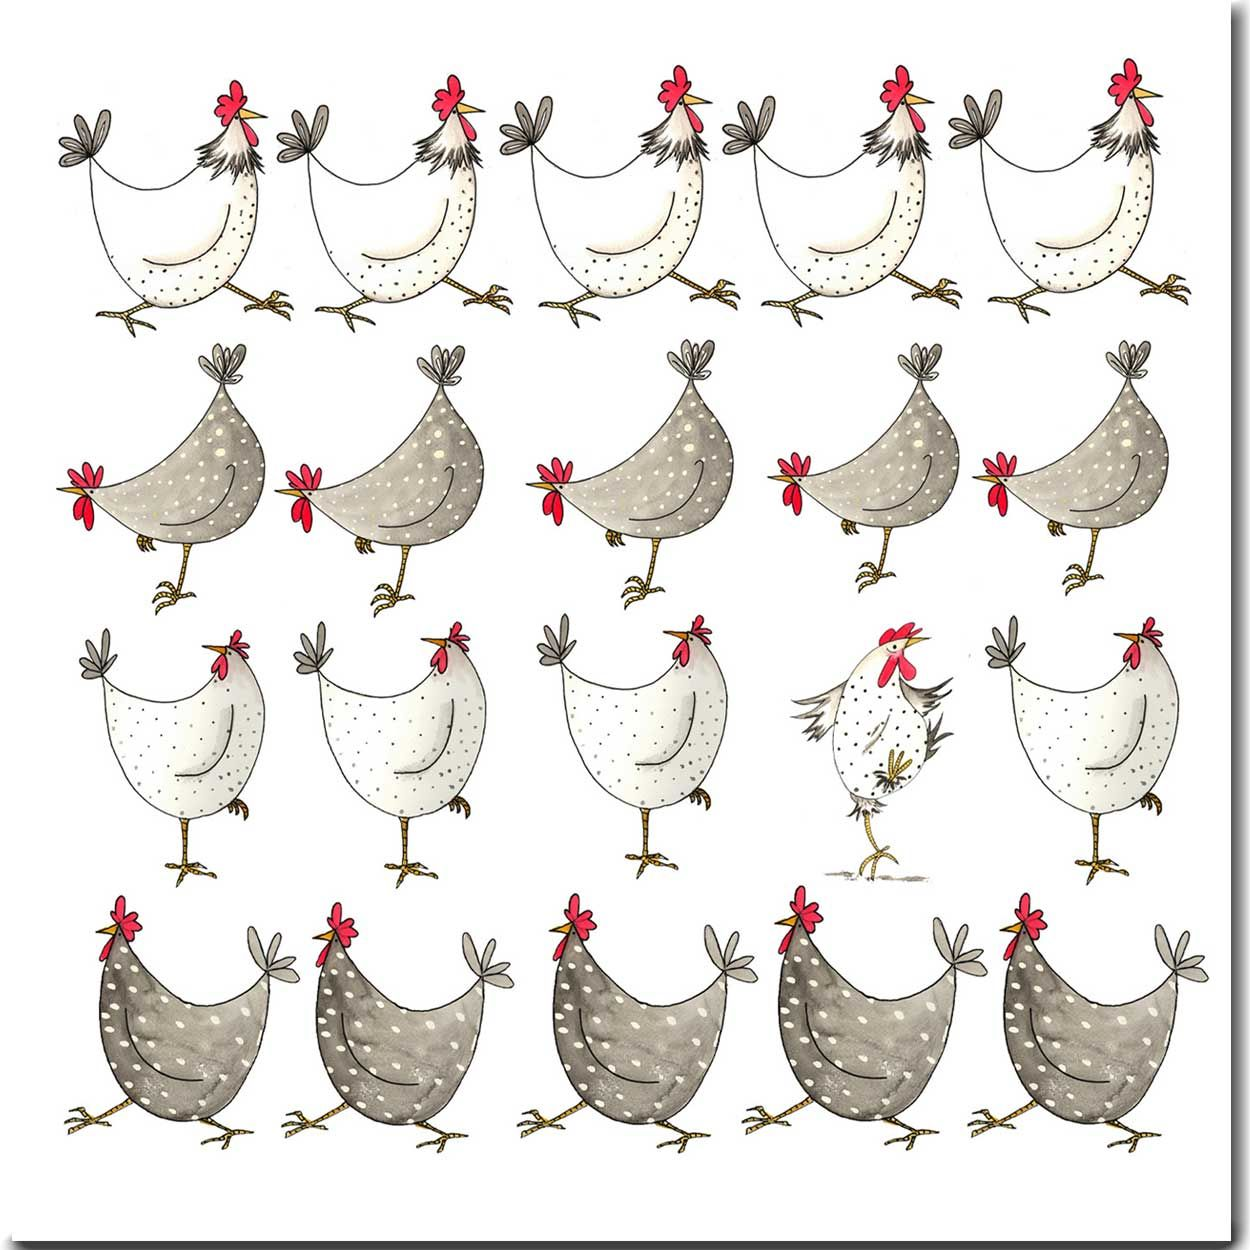 Shop for multi chickens greeting card from the skinny card company shop for multi chickens greeting card from the skinny card company 225 kristyandbryce Gallery